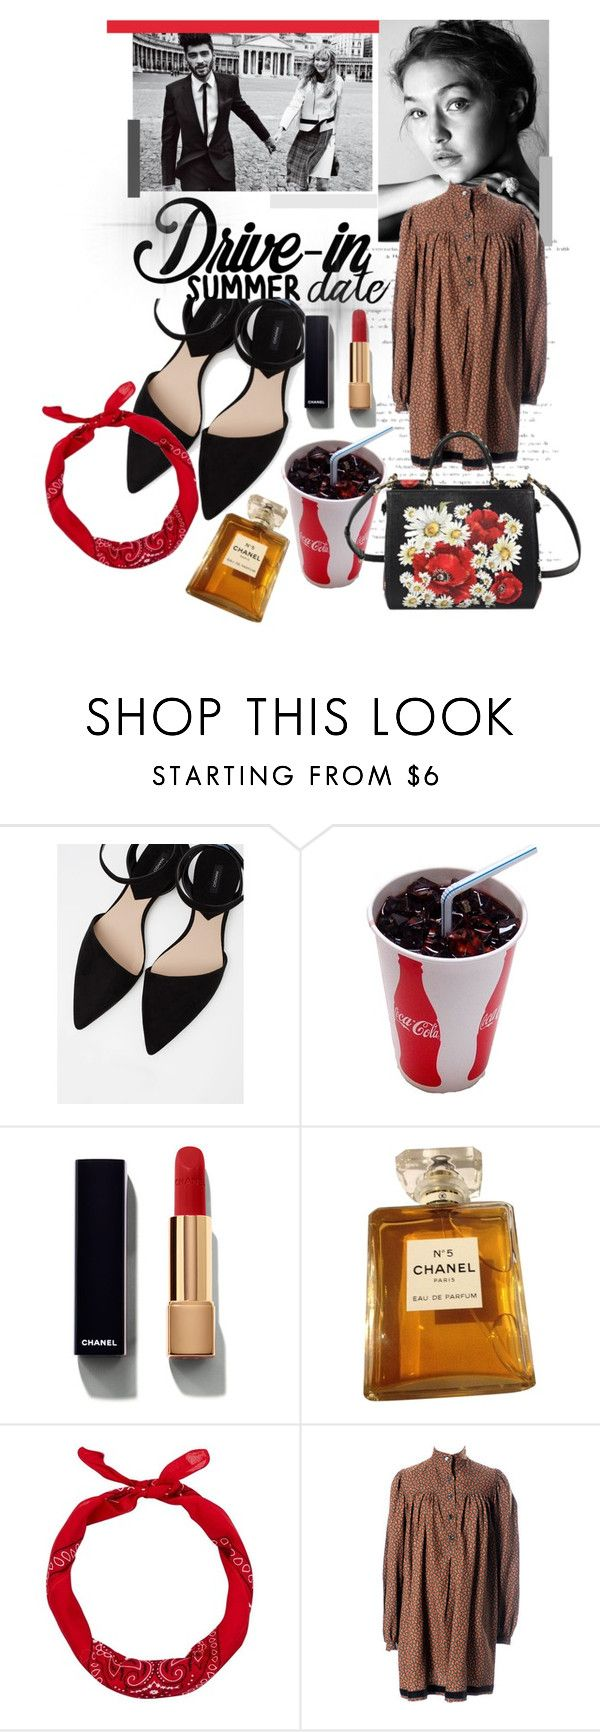 """Summer Date"" by karimaputri on Polyvore featuring MANGO, Chanel, New Look, Yves Saint Laurent, Dolce&Gabbana, DateNight, drivein and summerdate"